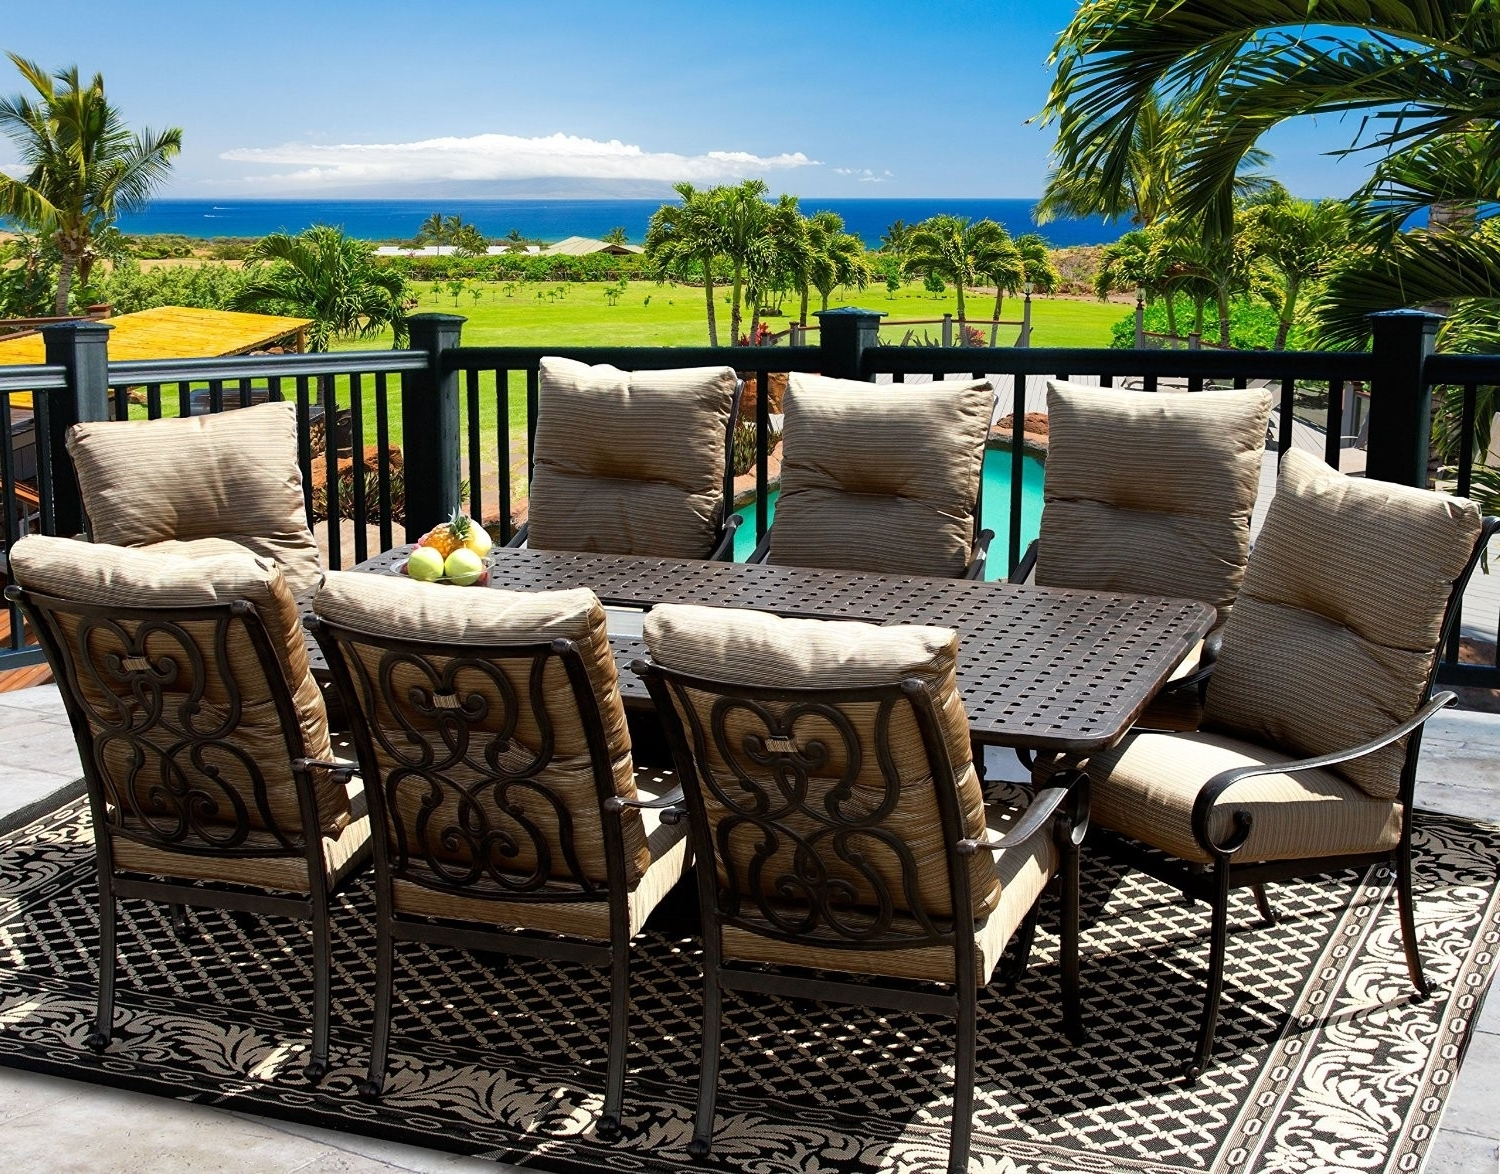 Famous Outdoor Tortuga Dining Tables With Tortuga 42X84 Rectangle Outdoor Patio 9Pc Dining Set For 8 Person (View 15 of 25)